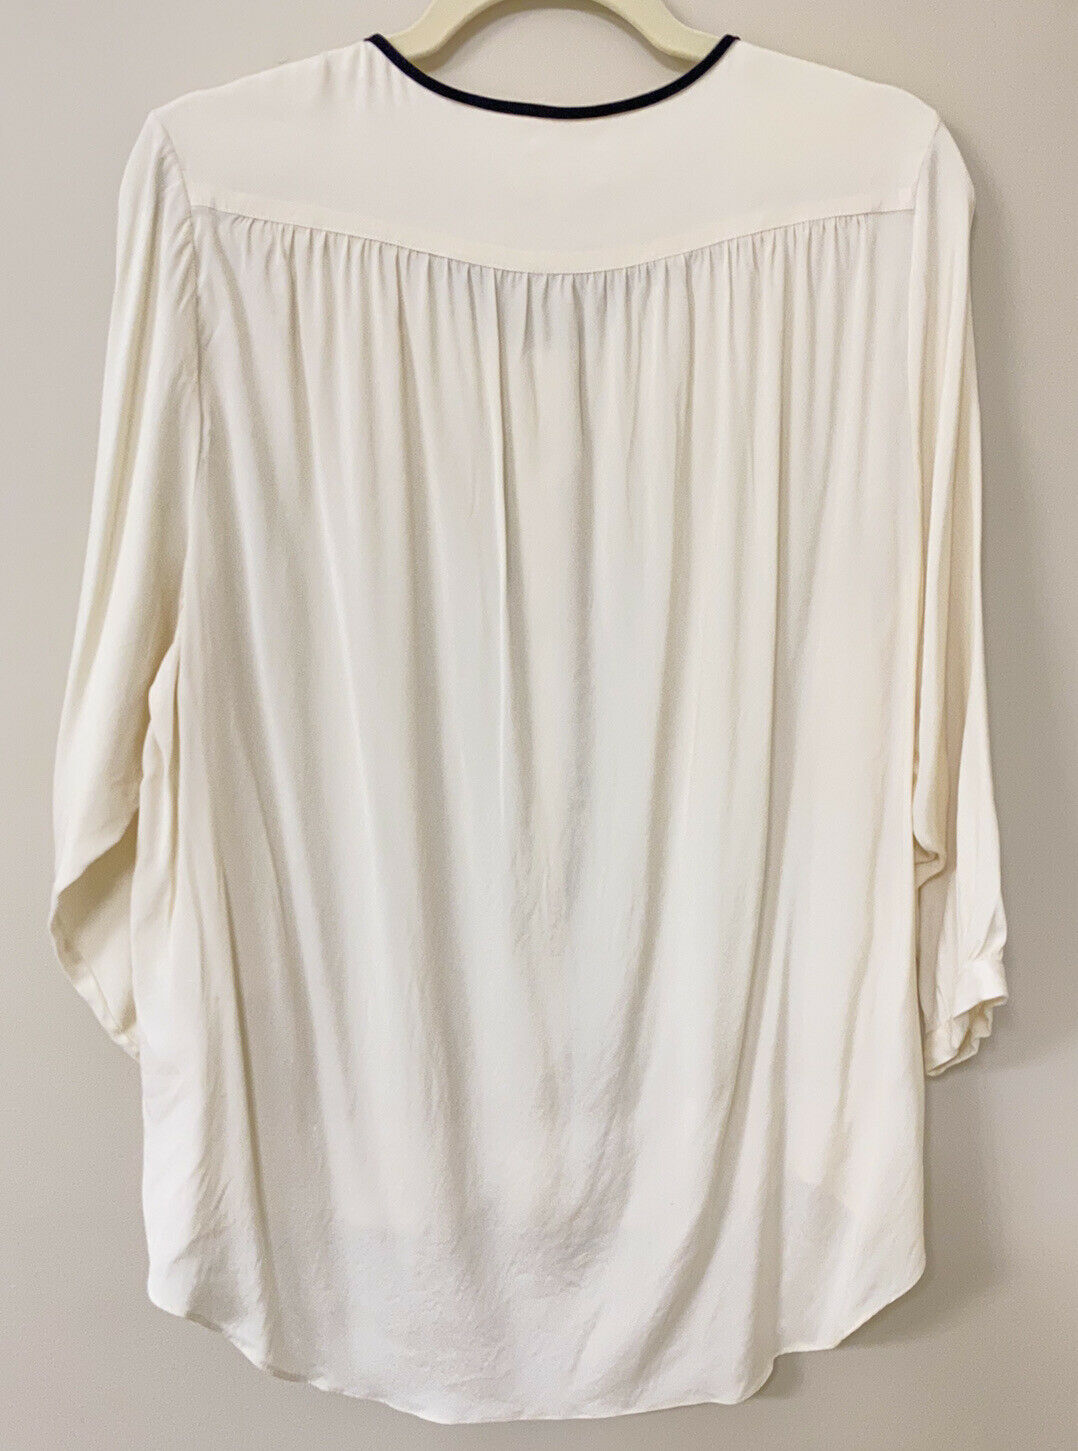 RAG AND BONE SILK BLOUSE - MADE IN USA - WHITE - … - image 2